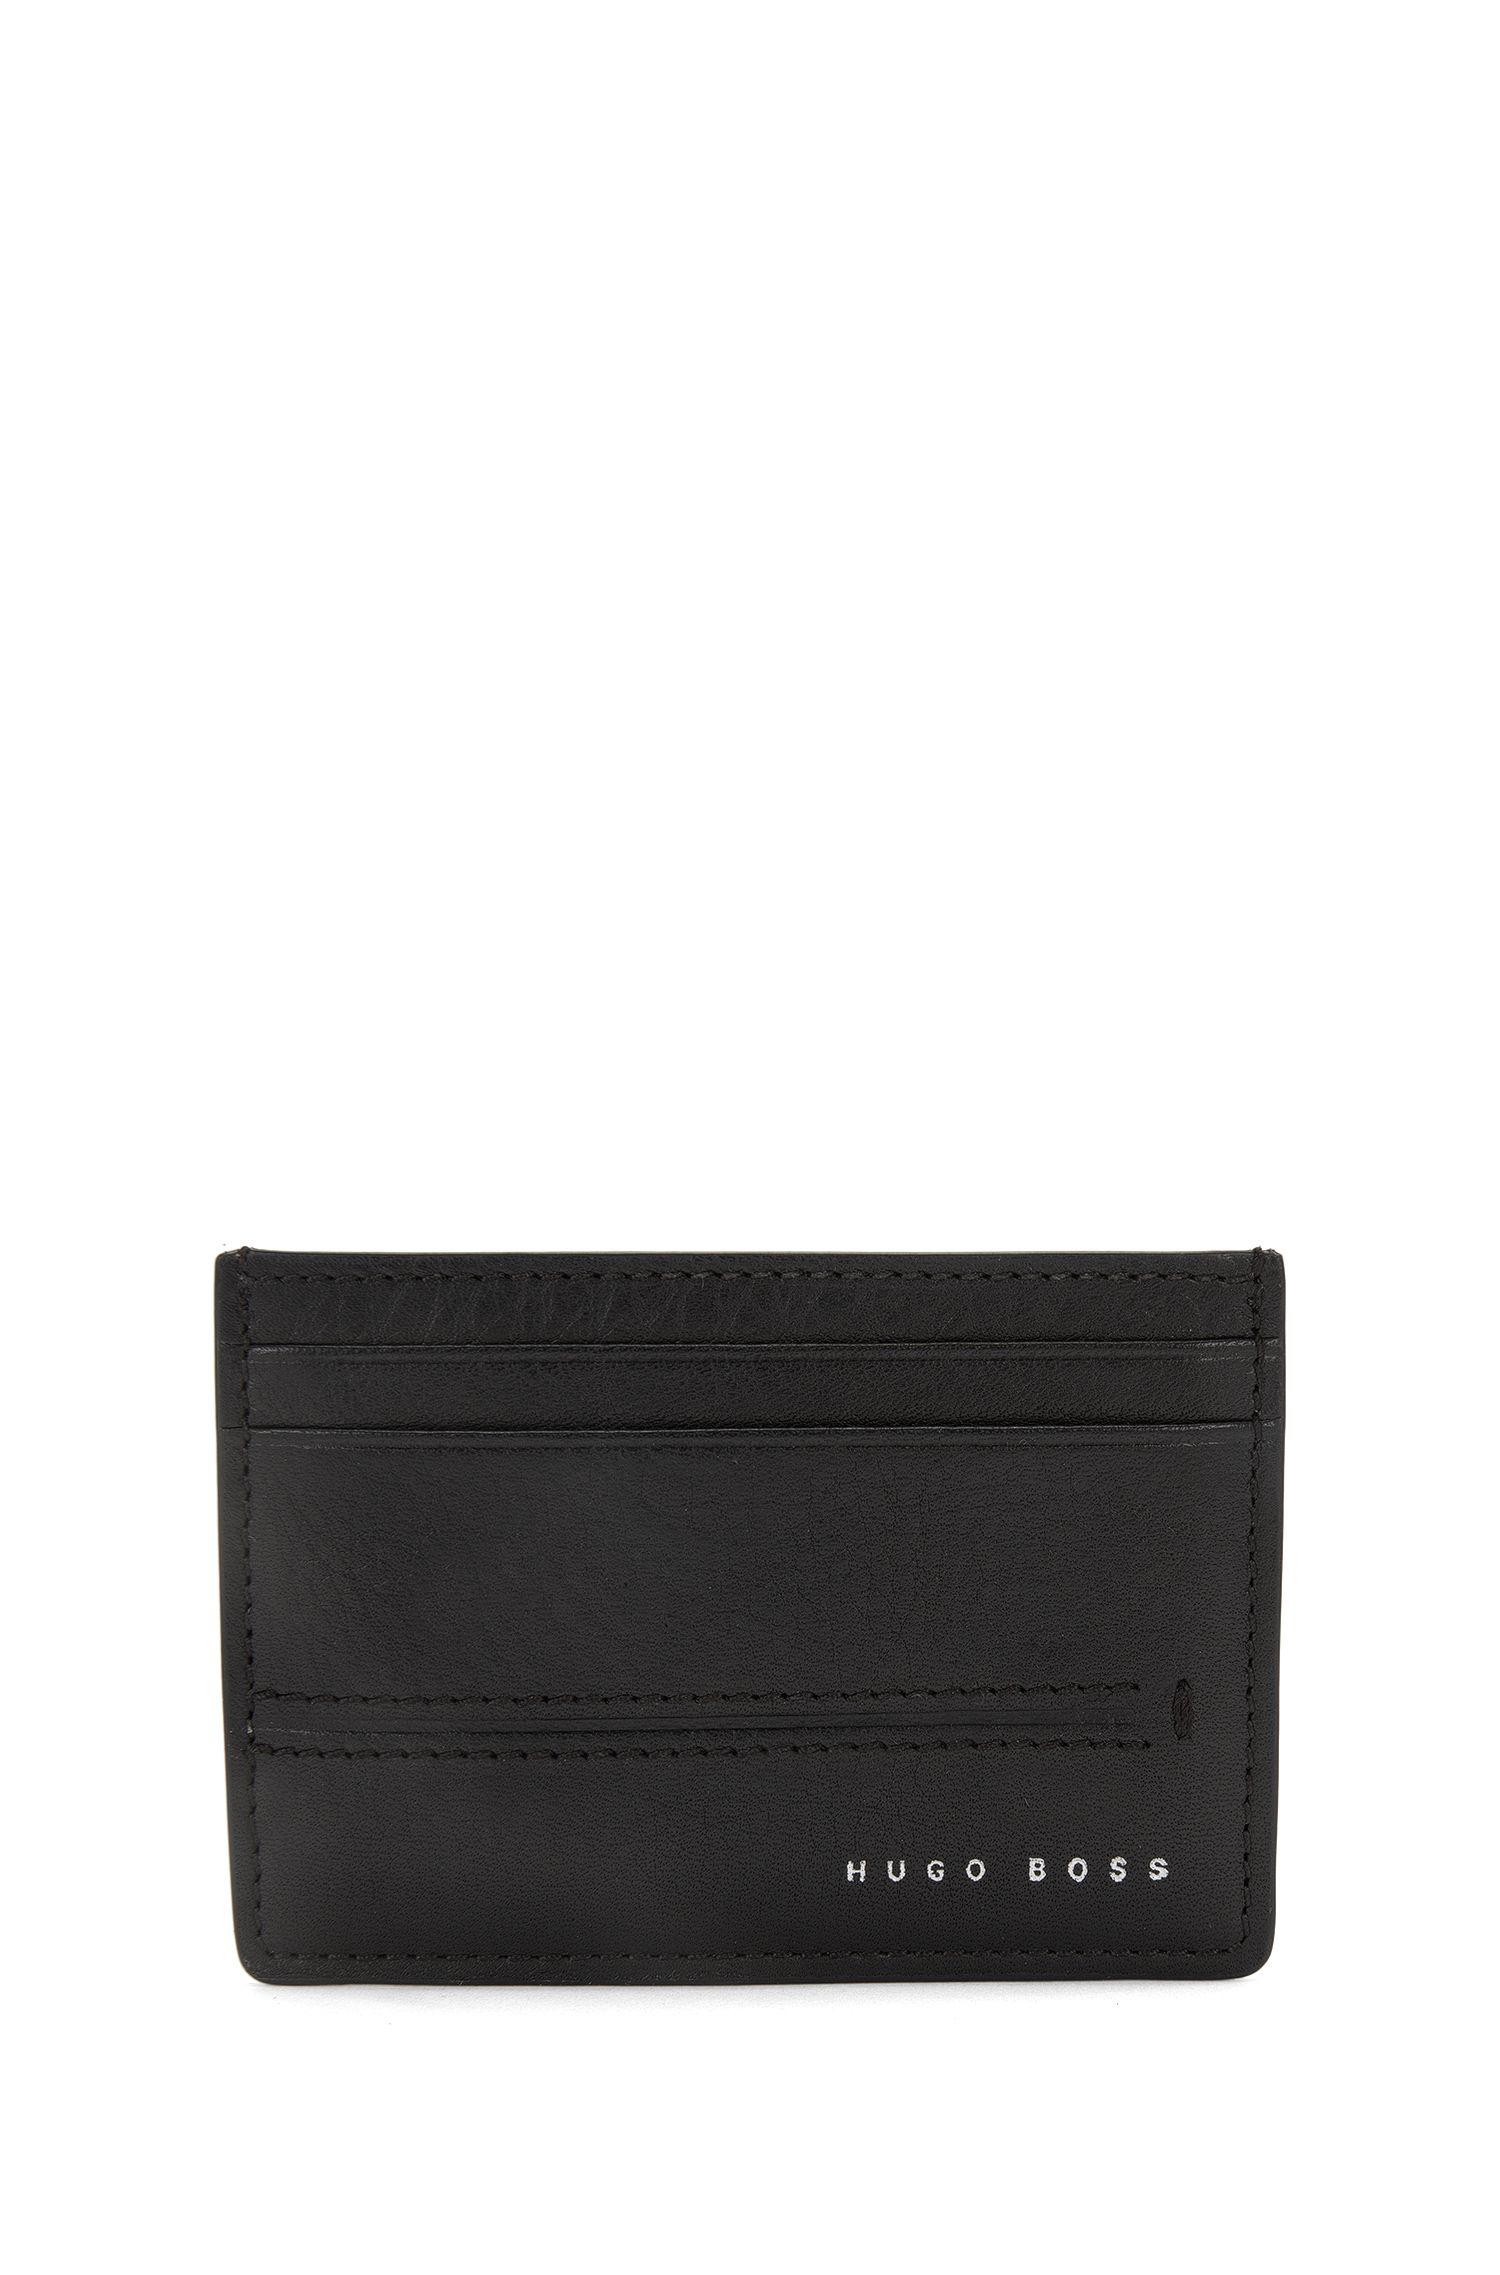 'Elite S Card' | Leather Card Case